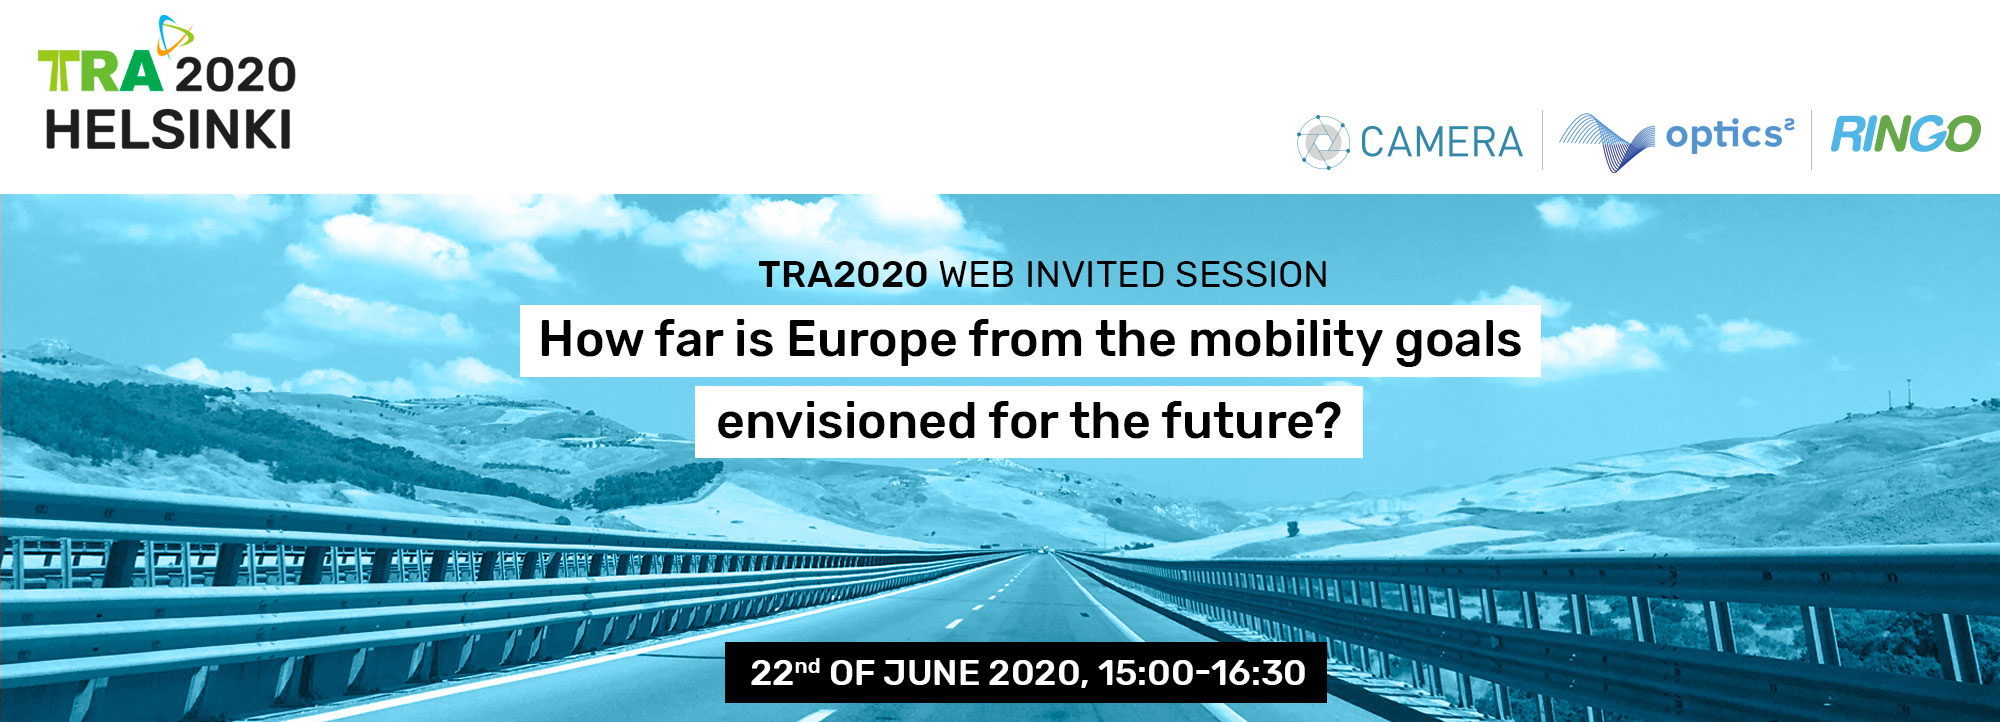 Welcome to the TRA2020 Invited Session on Mobility